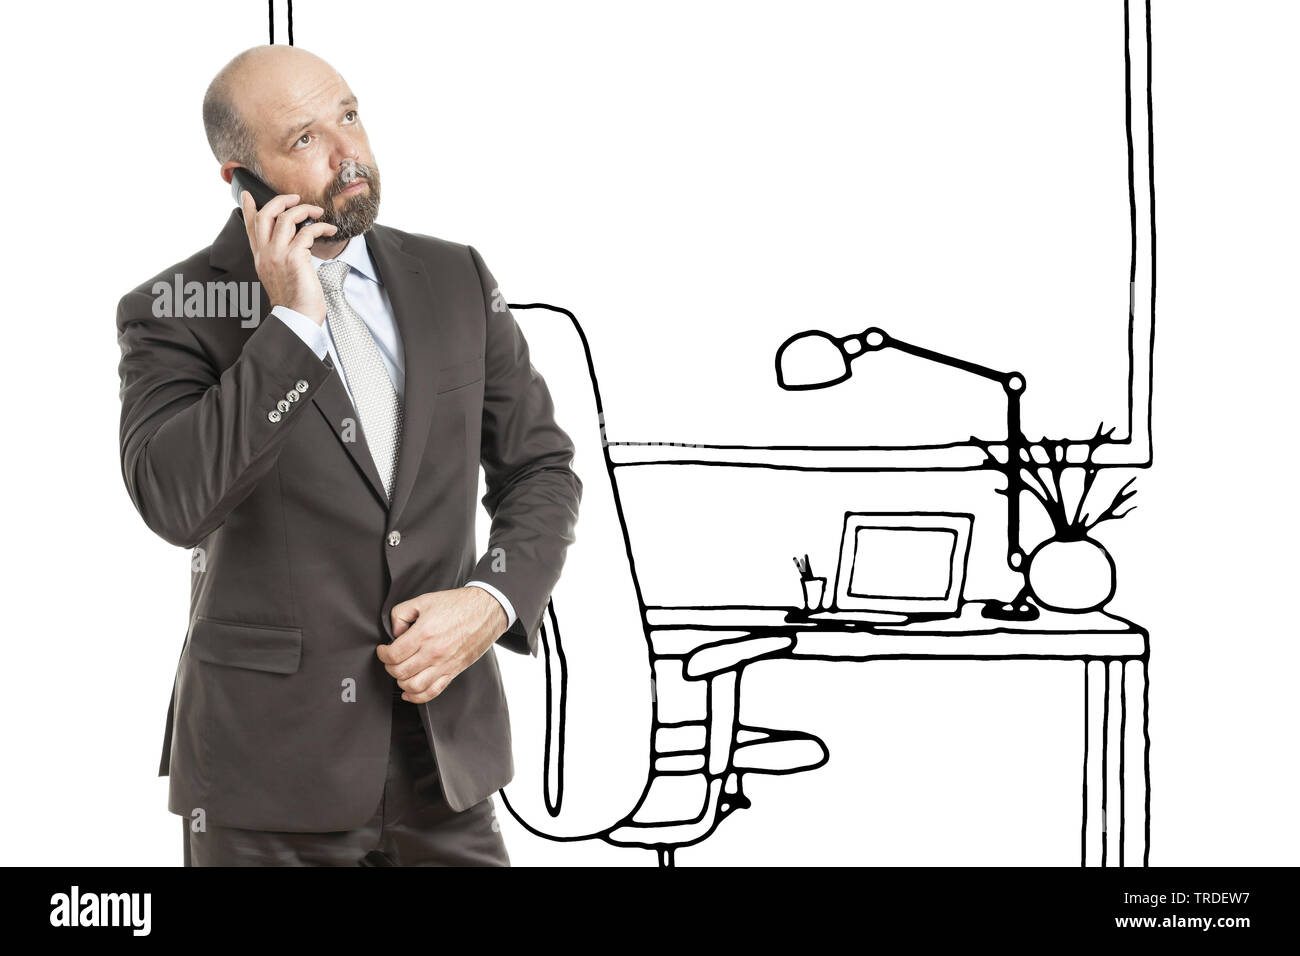 Portrait of a Businessman making a call with his mobile phone with a sketch of an office in the background - Stock Image